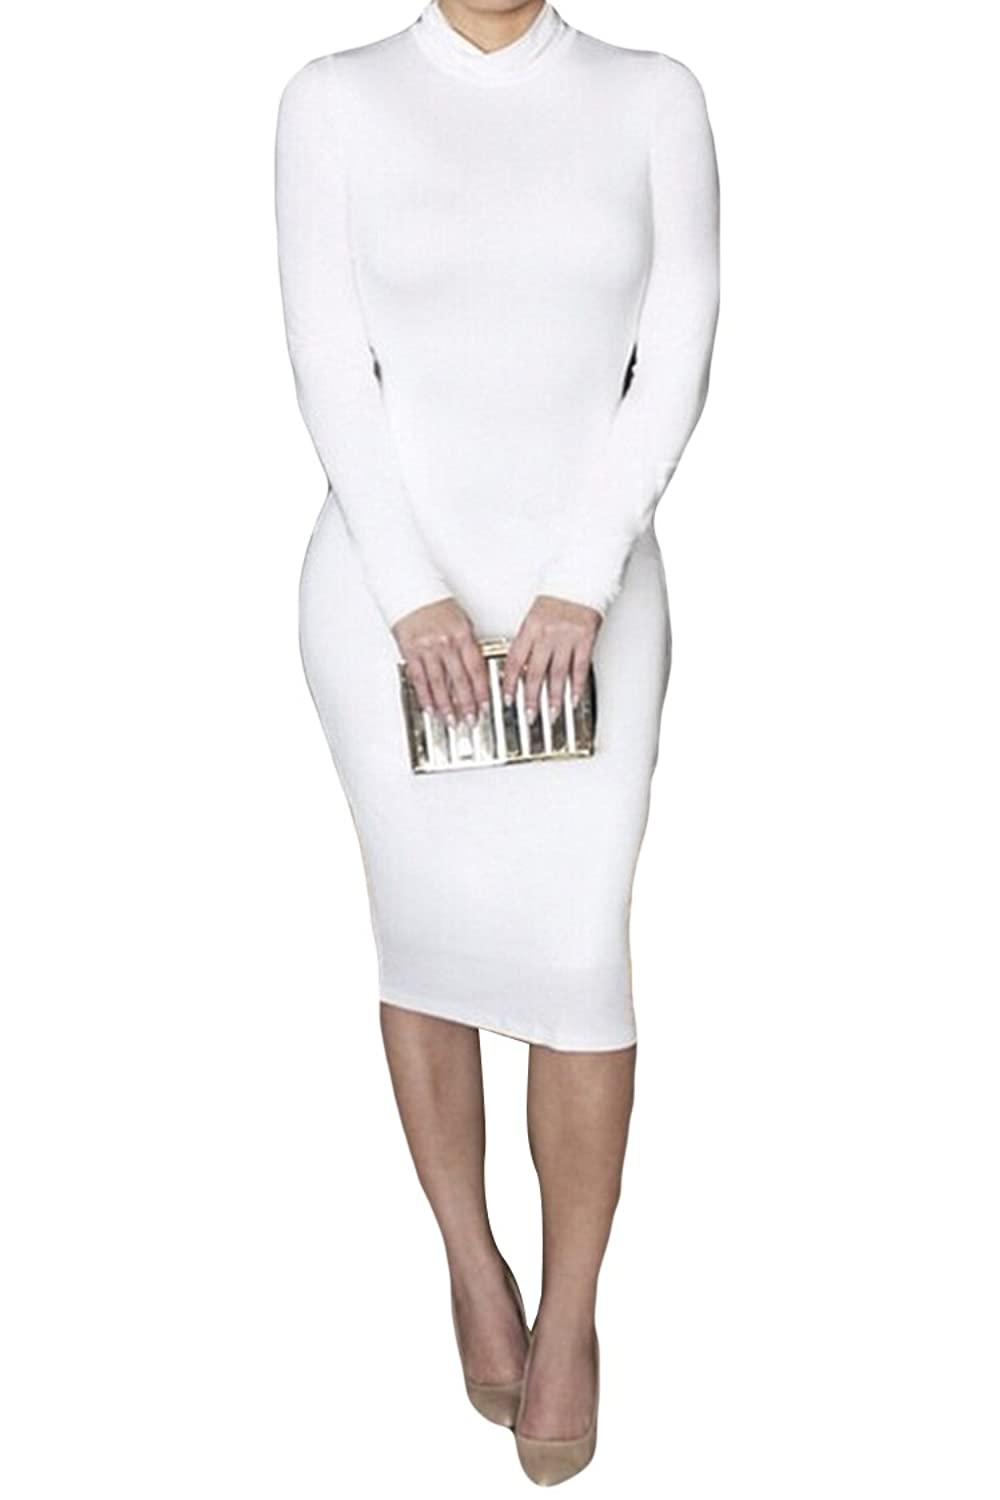 Pink Queen@ Womens Turtleneck Long Sleeve Mid Length Bodycon Bandage Dress